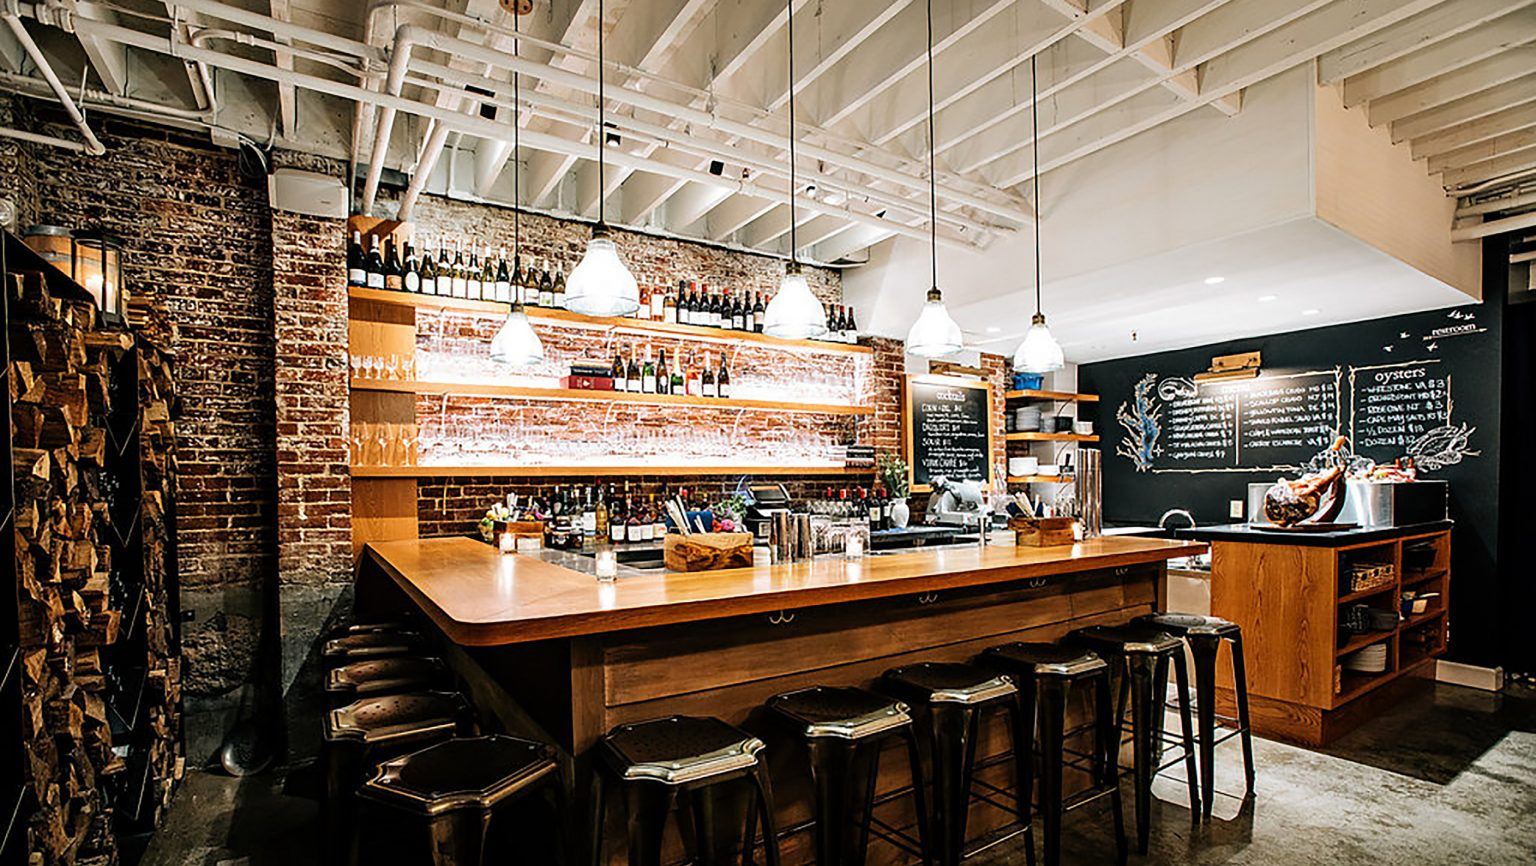 A New Wave of Wine Bars in Washington, D.C. | SevenFifty Daily